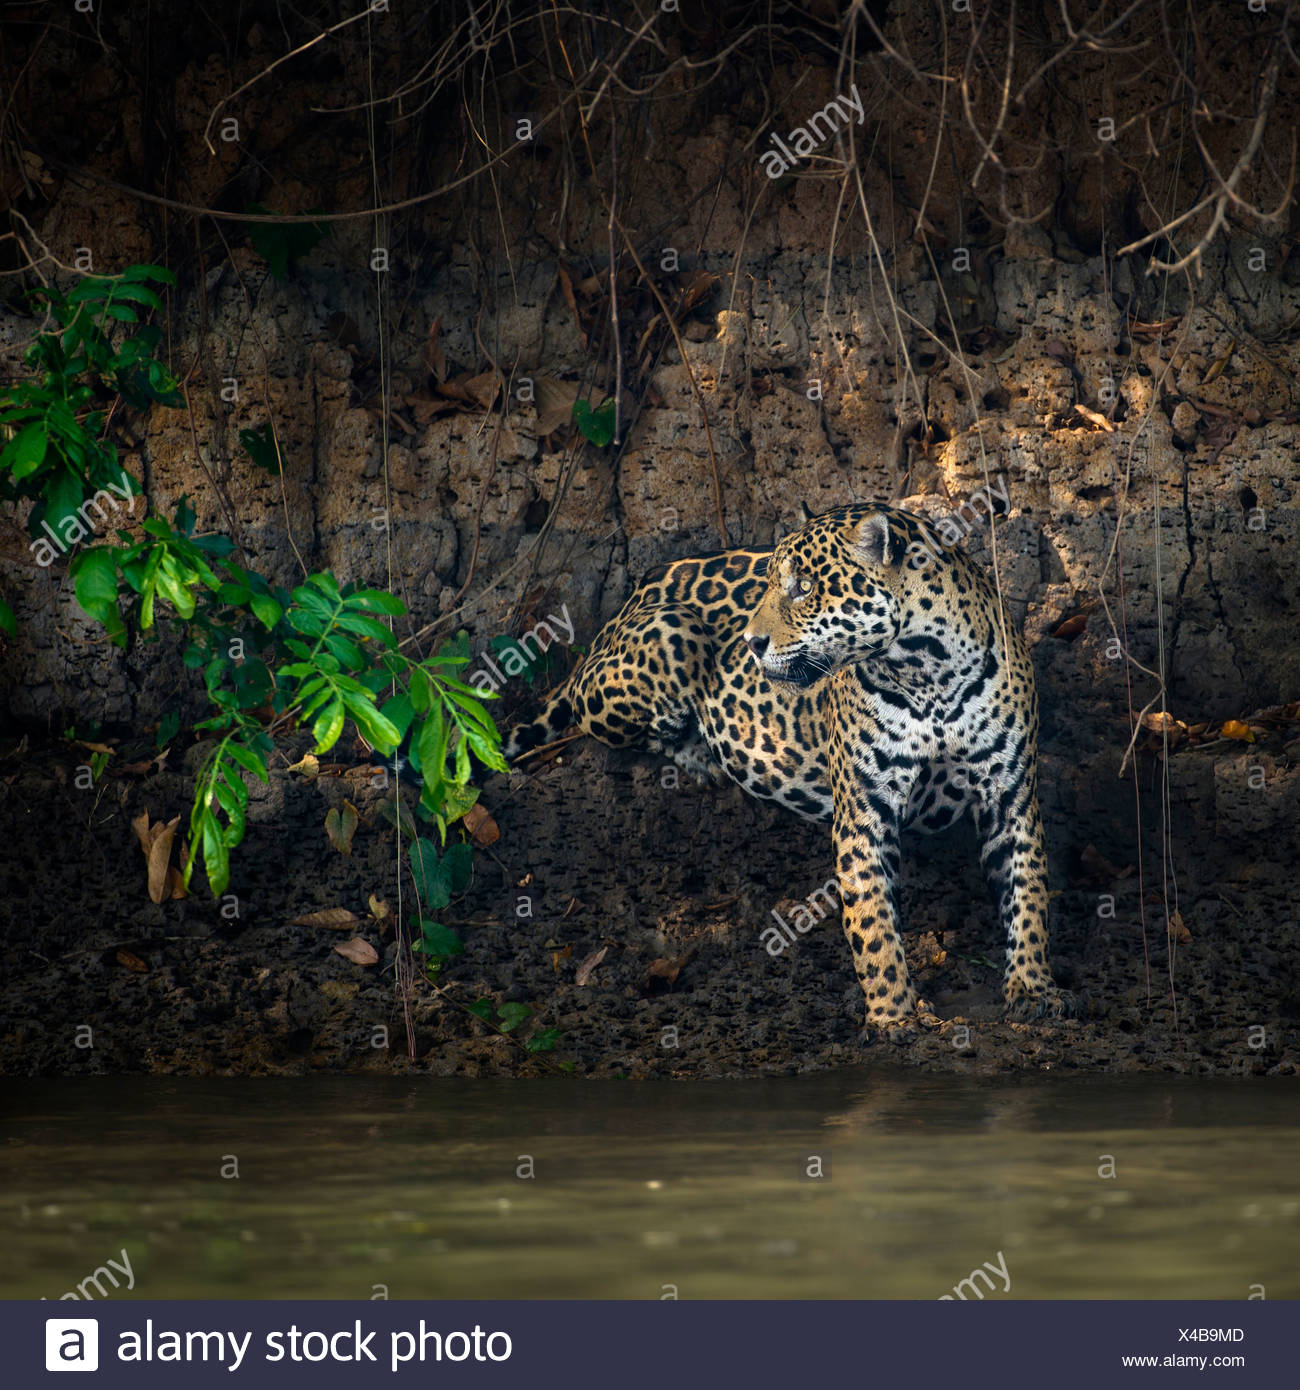 Wild male Jaguar at the edge of the Piquiri River, a tributary of Cuiaba River, Northern Pantanal, Brazil. - Stock Image